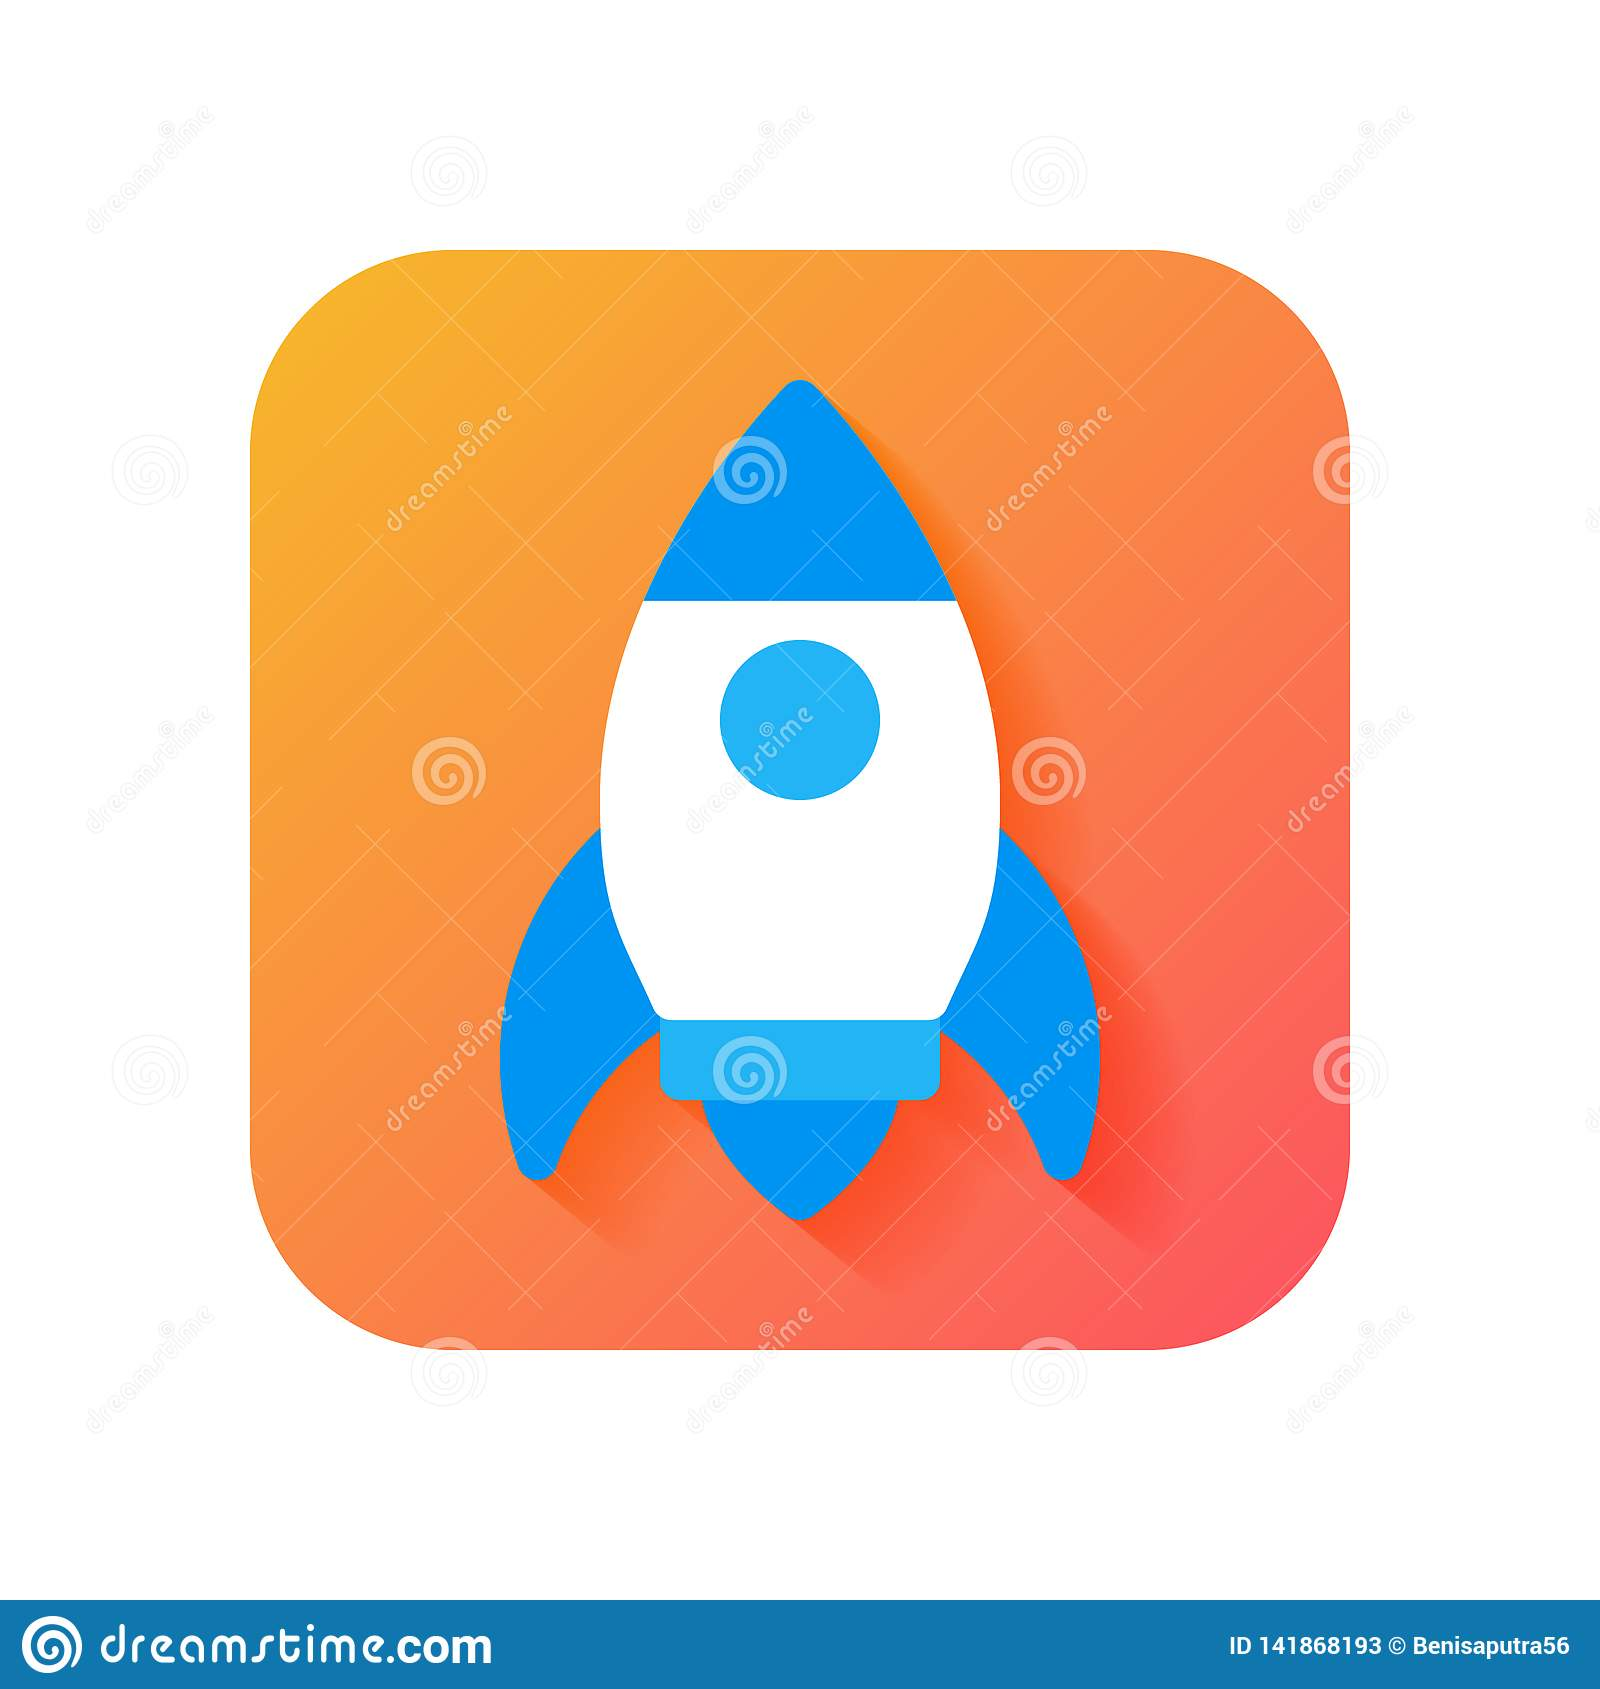 Rocket, Start up, Launcher icon. Modern Icon in Flat style on Gradient background. Vector icon for any purposes